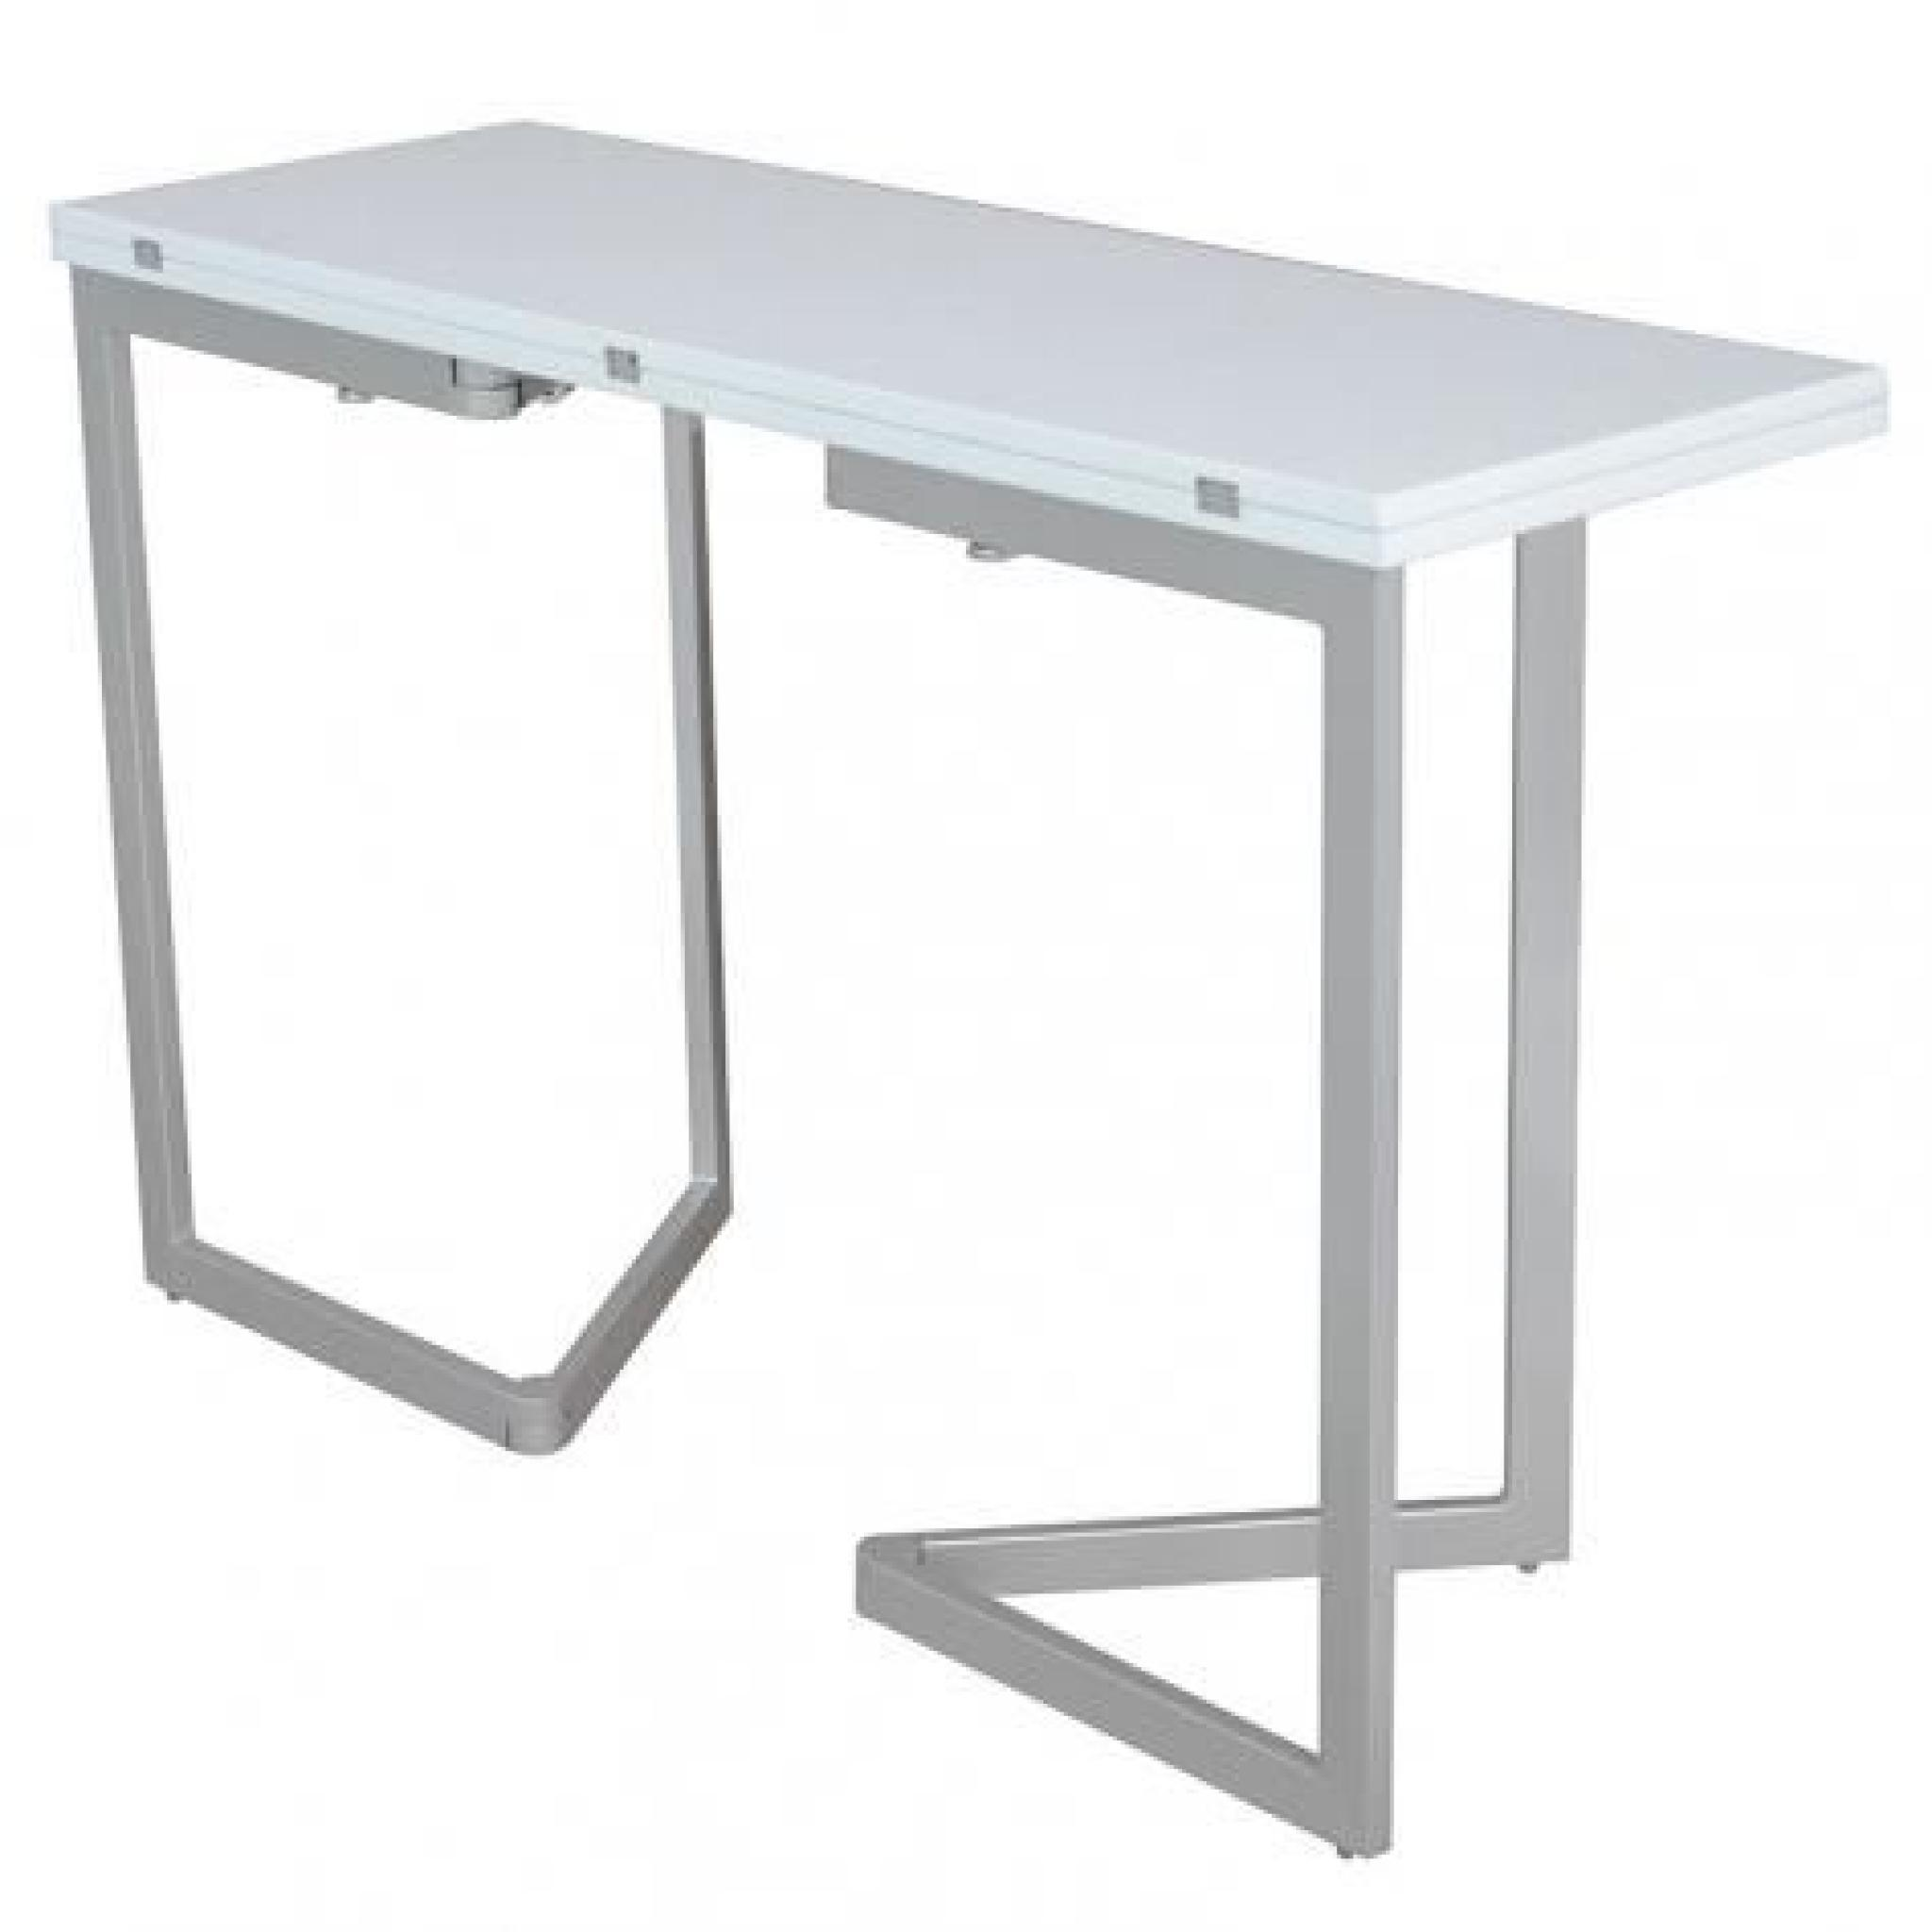 Table console extensible blanche laqu e talia achat for Table blanche extensible